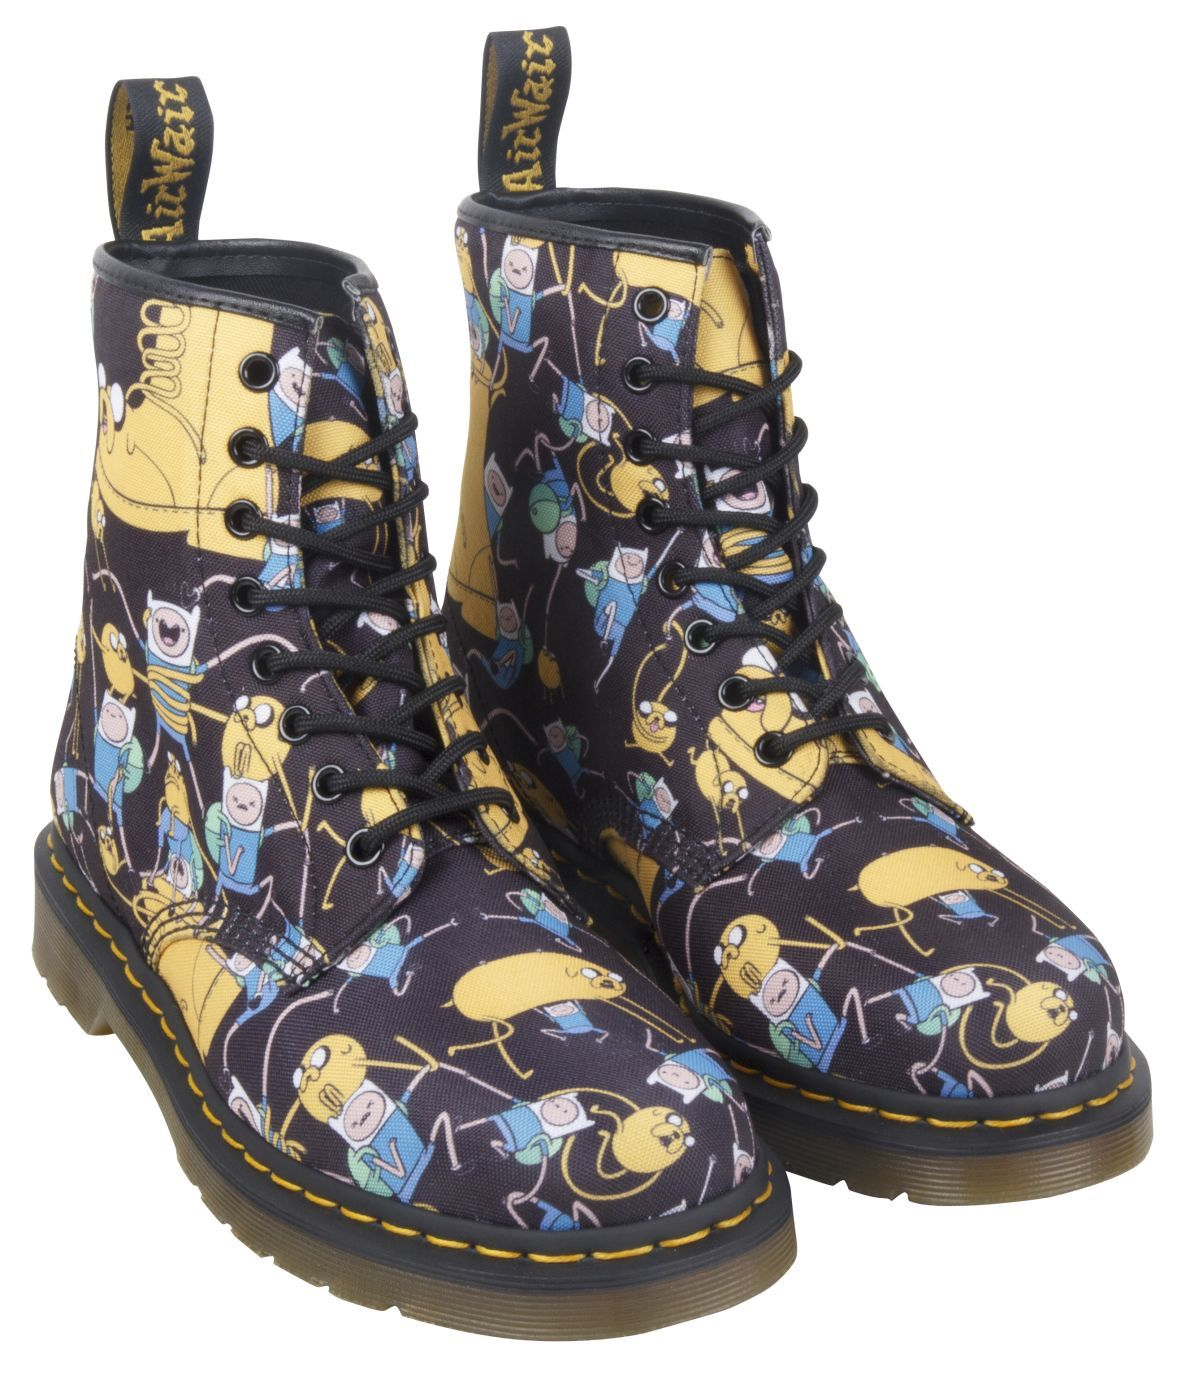 47200962657a78 Dr. Martens X Adventure Time - Finn   Jake all-over print canvas boots.  Available online at drmartens.com and in selected stores from Monday 2nd  March.